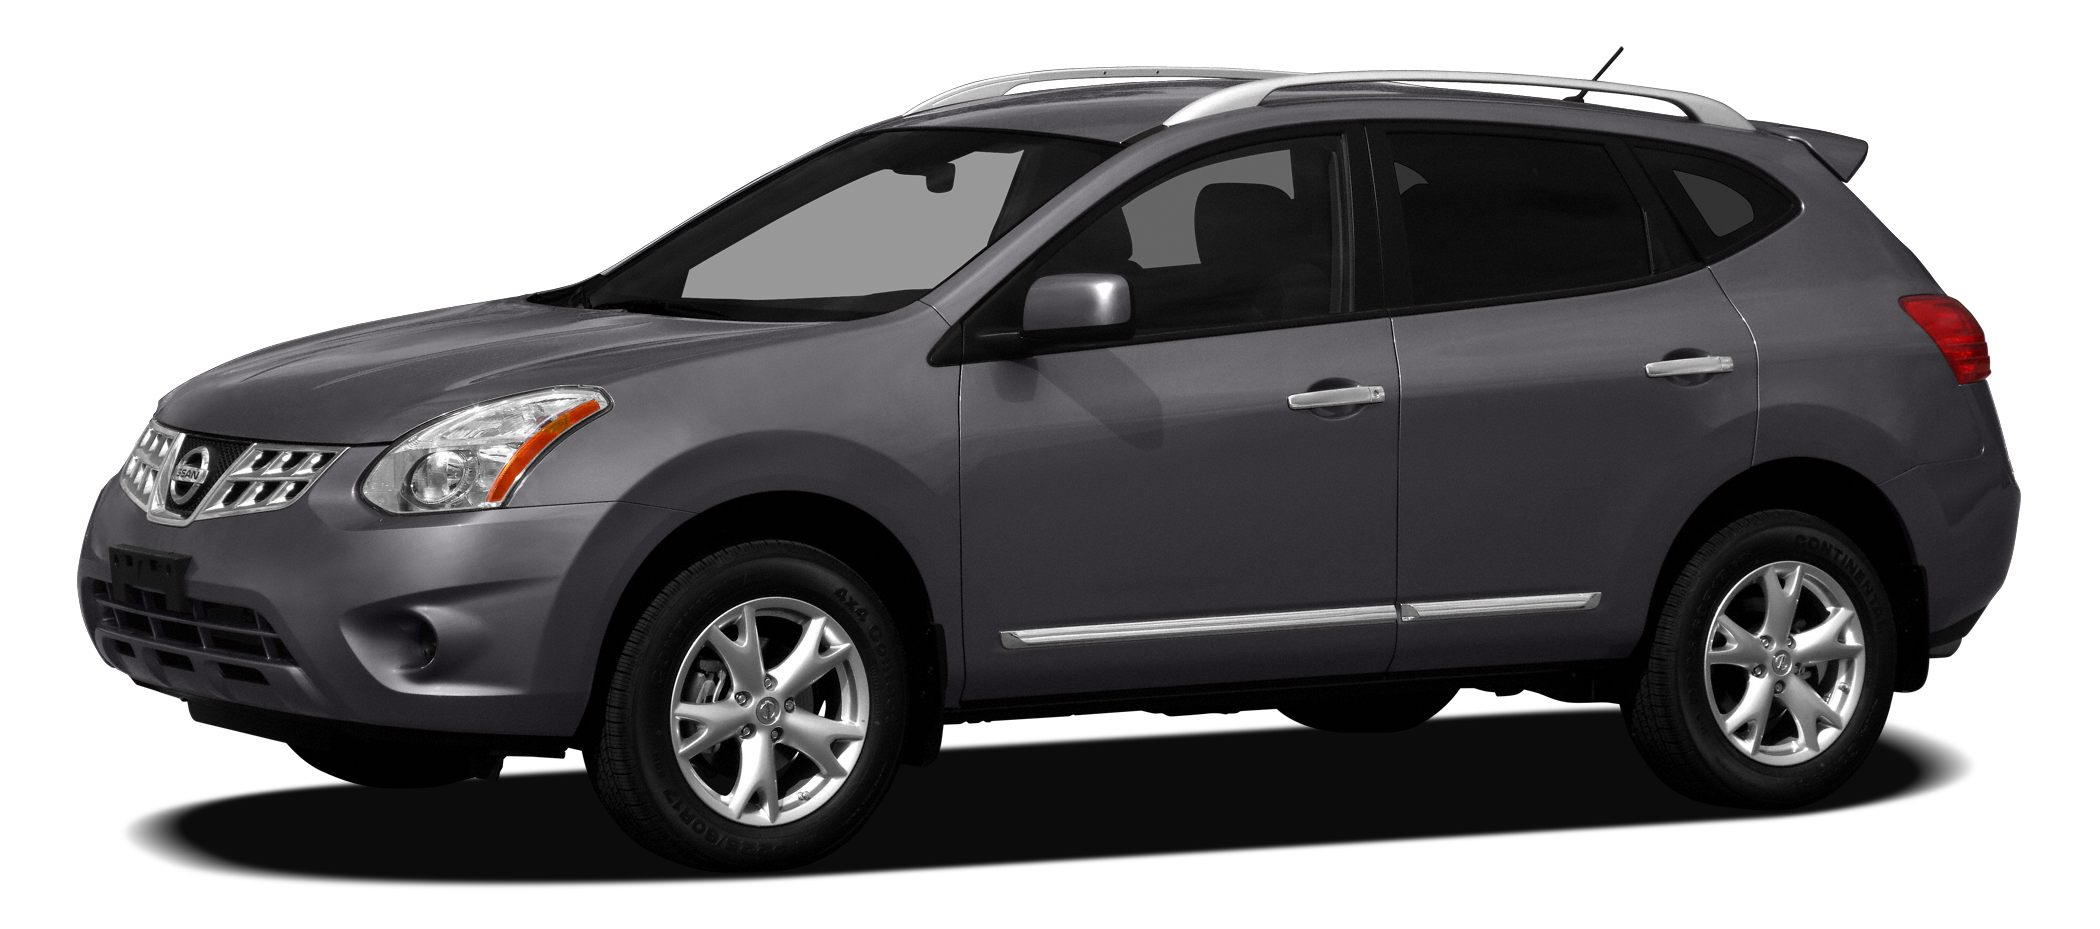 2011 Nissan Rogue S Vehicle Detailed Recent Oil Change and Passed Dealer Inspection Terrific fu